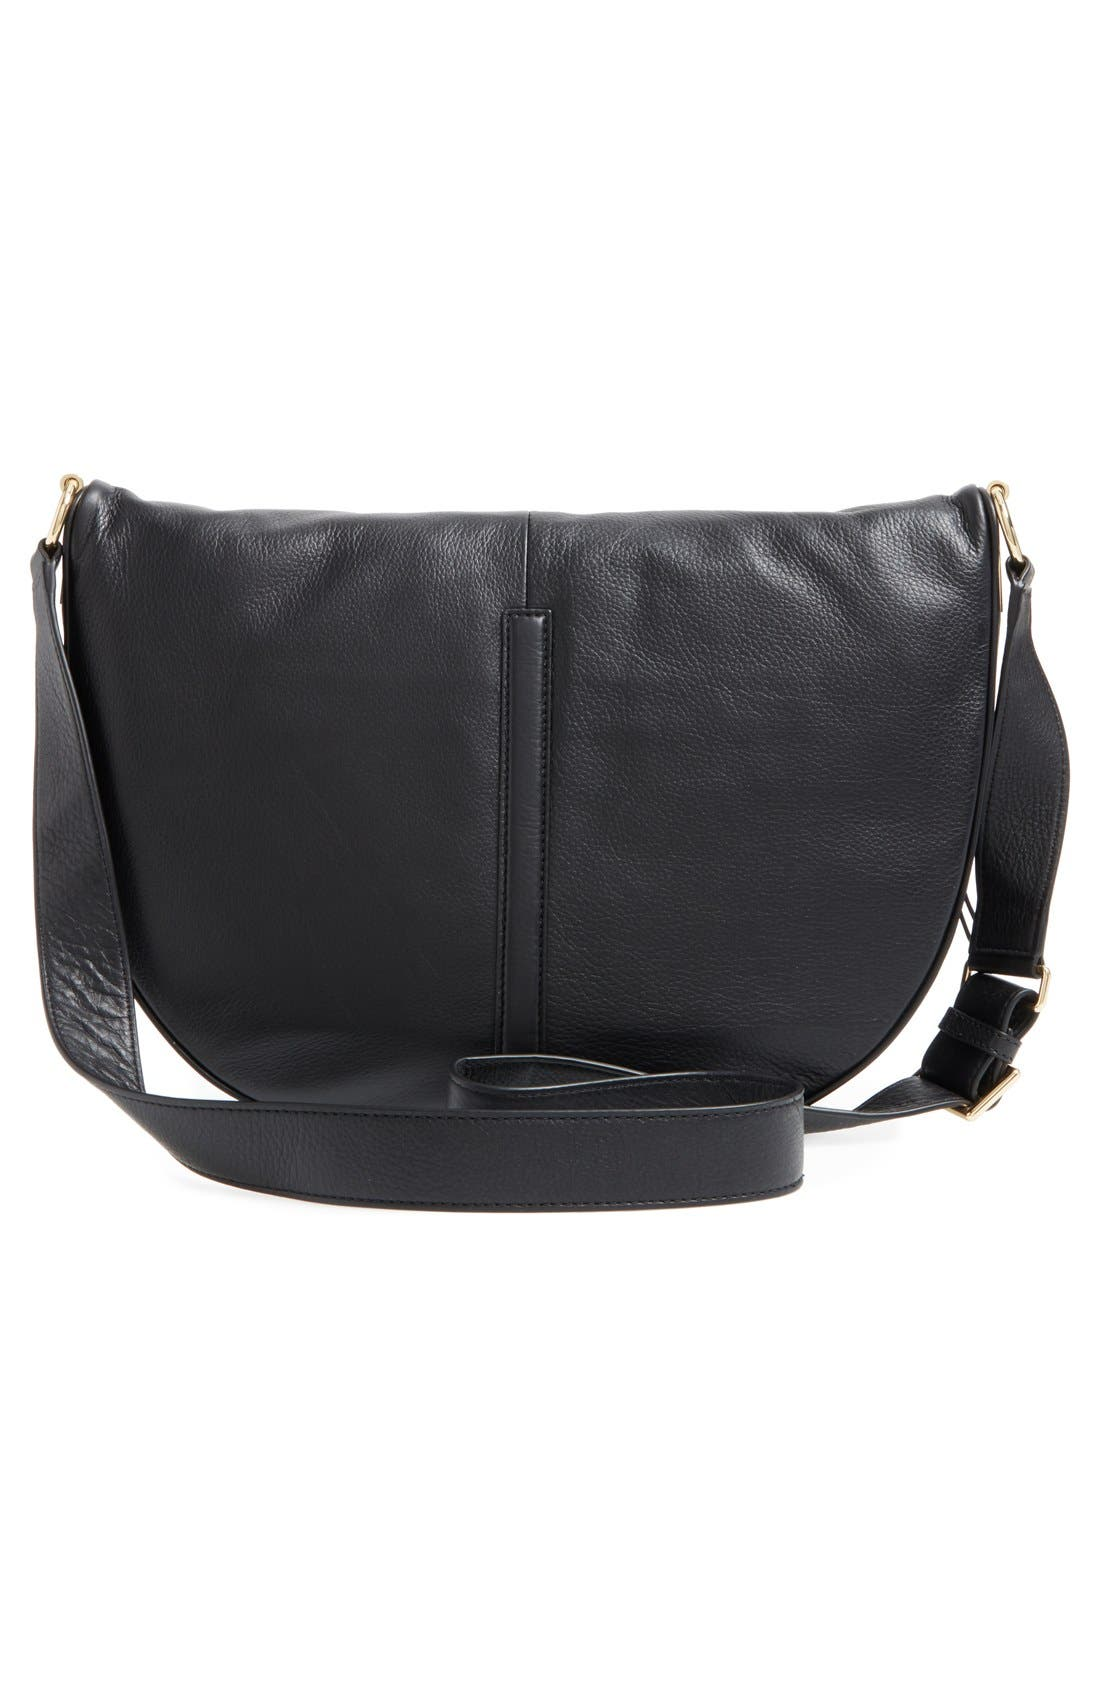 ELIZABETH AND JAMES, 'Scott Moon' Leather Crossbody Bag, Alternate thumbnail 4, color, 001